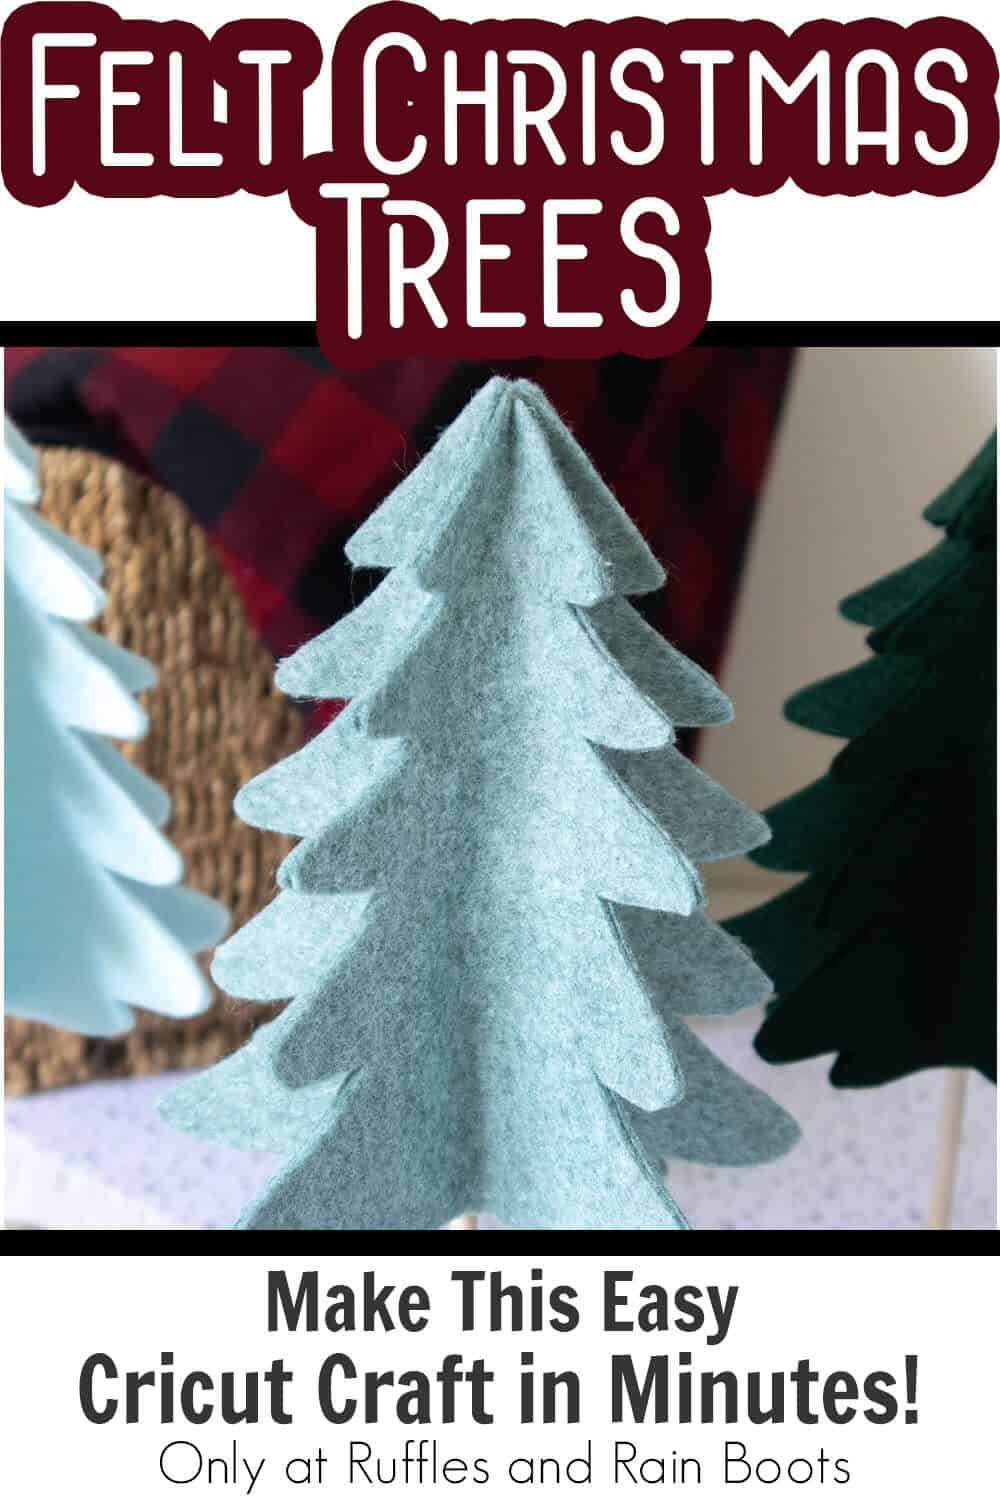 diy scandinavian christmas trees felt with text which reads felt christmas tres make this easy cricut craft in minutes!